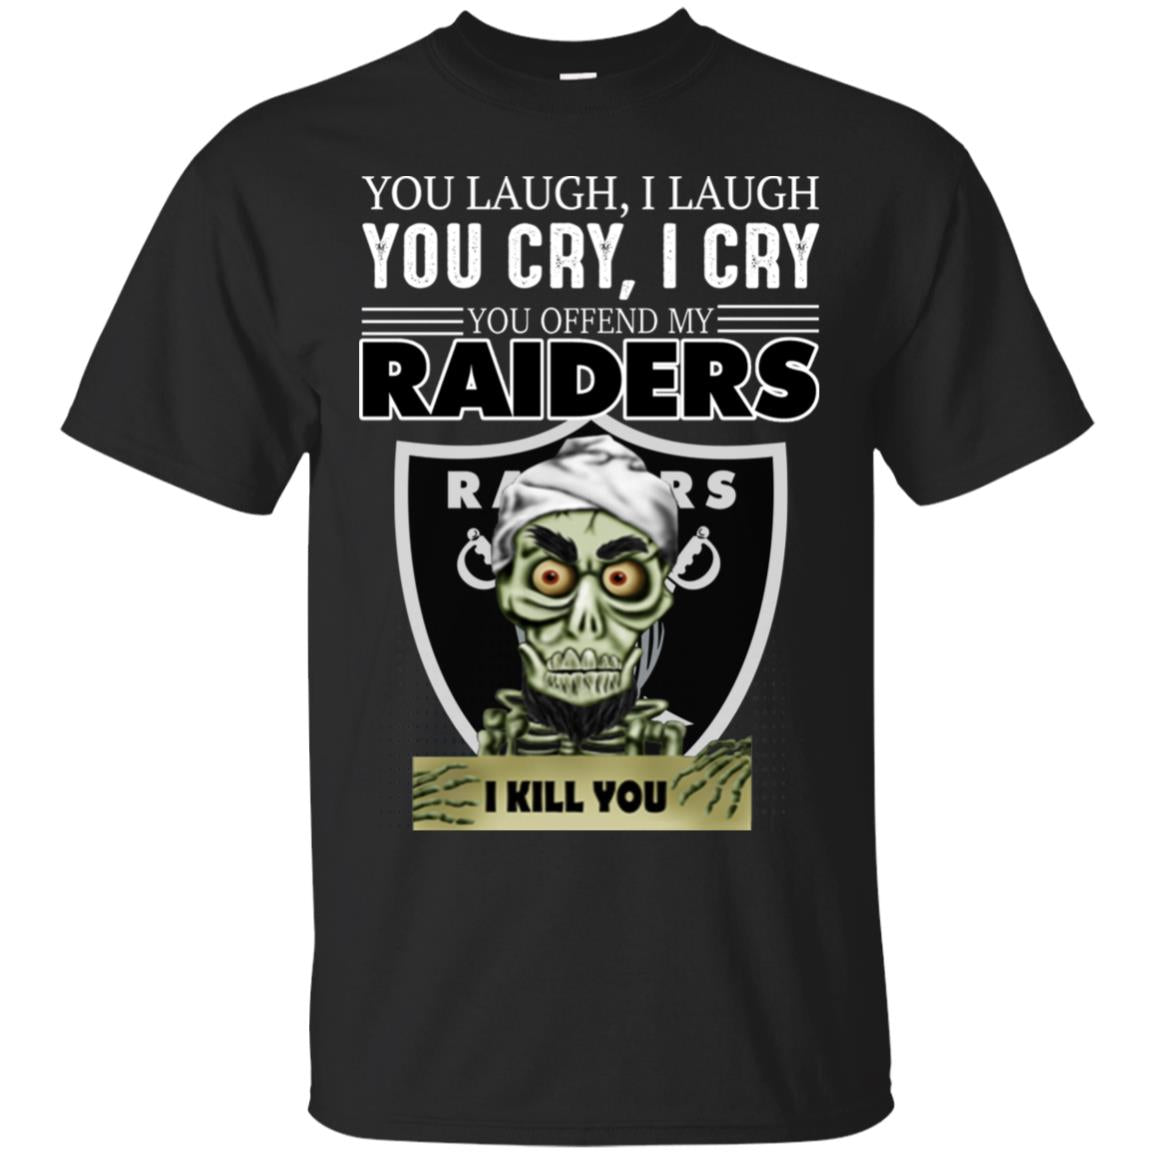 You Laugh I Laugh You Cry I Cry You offend my Raiders I kill you